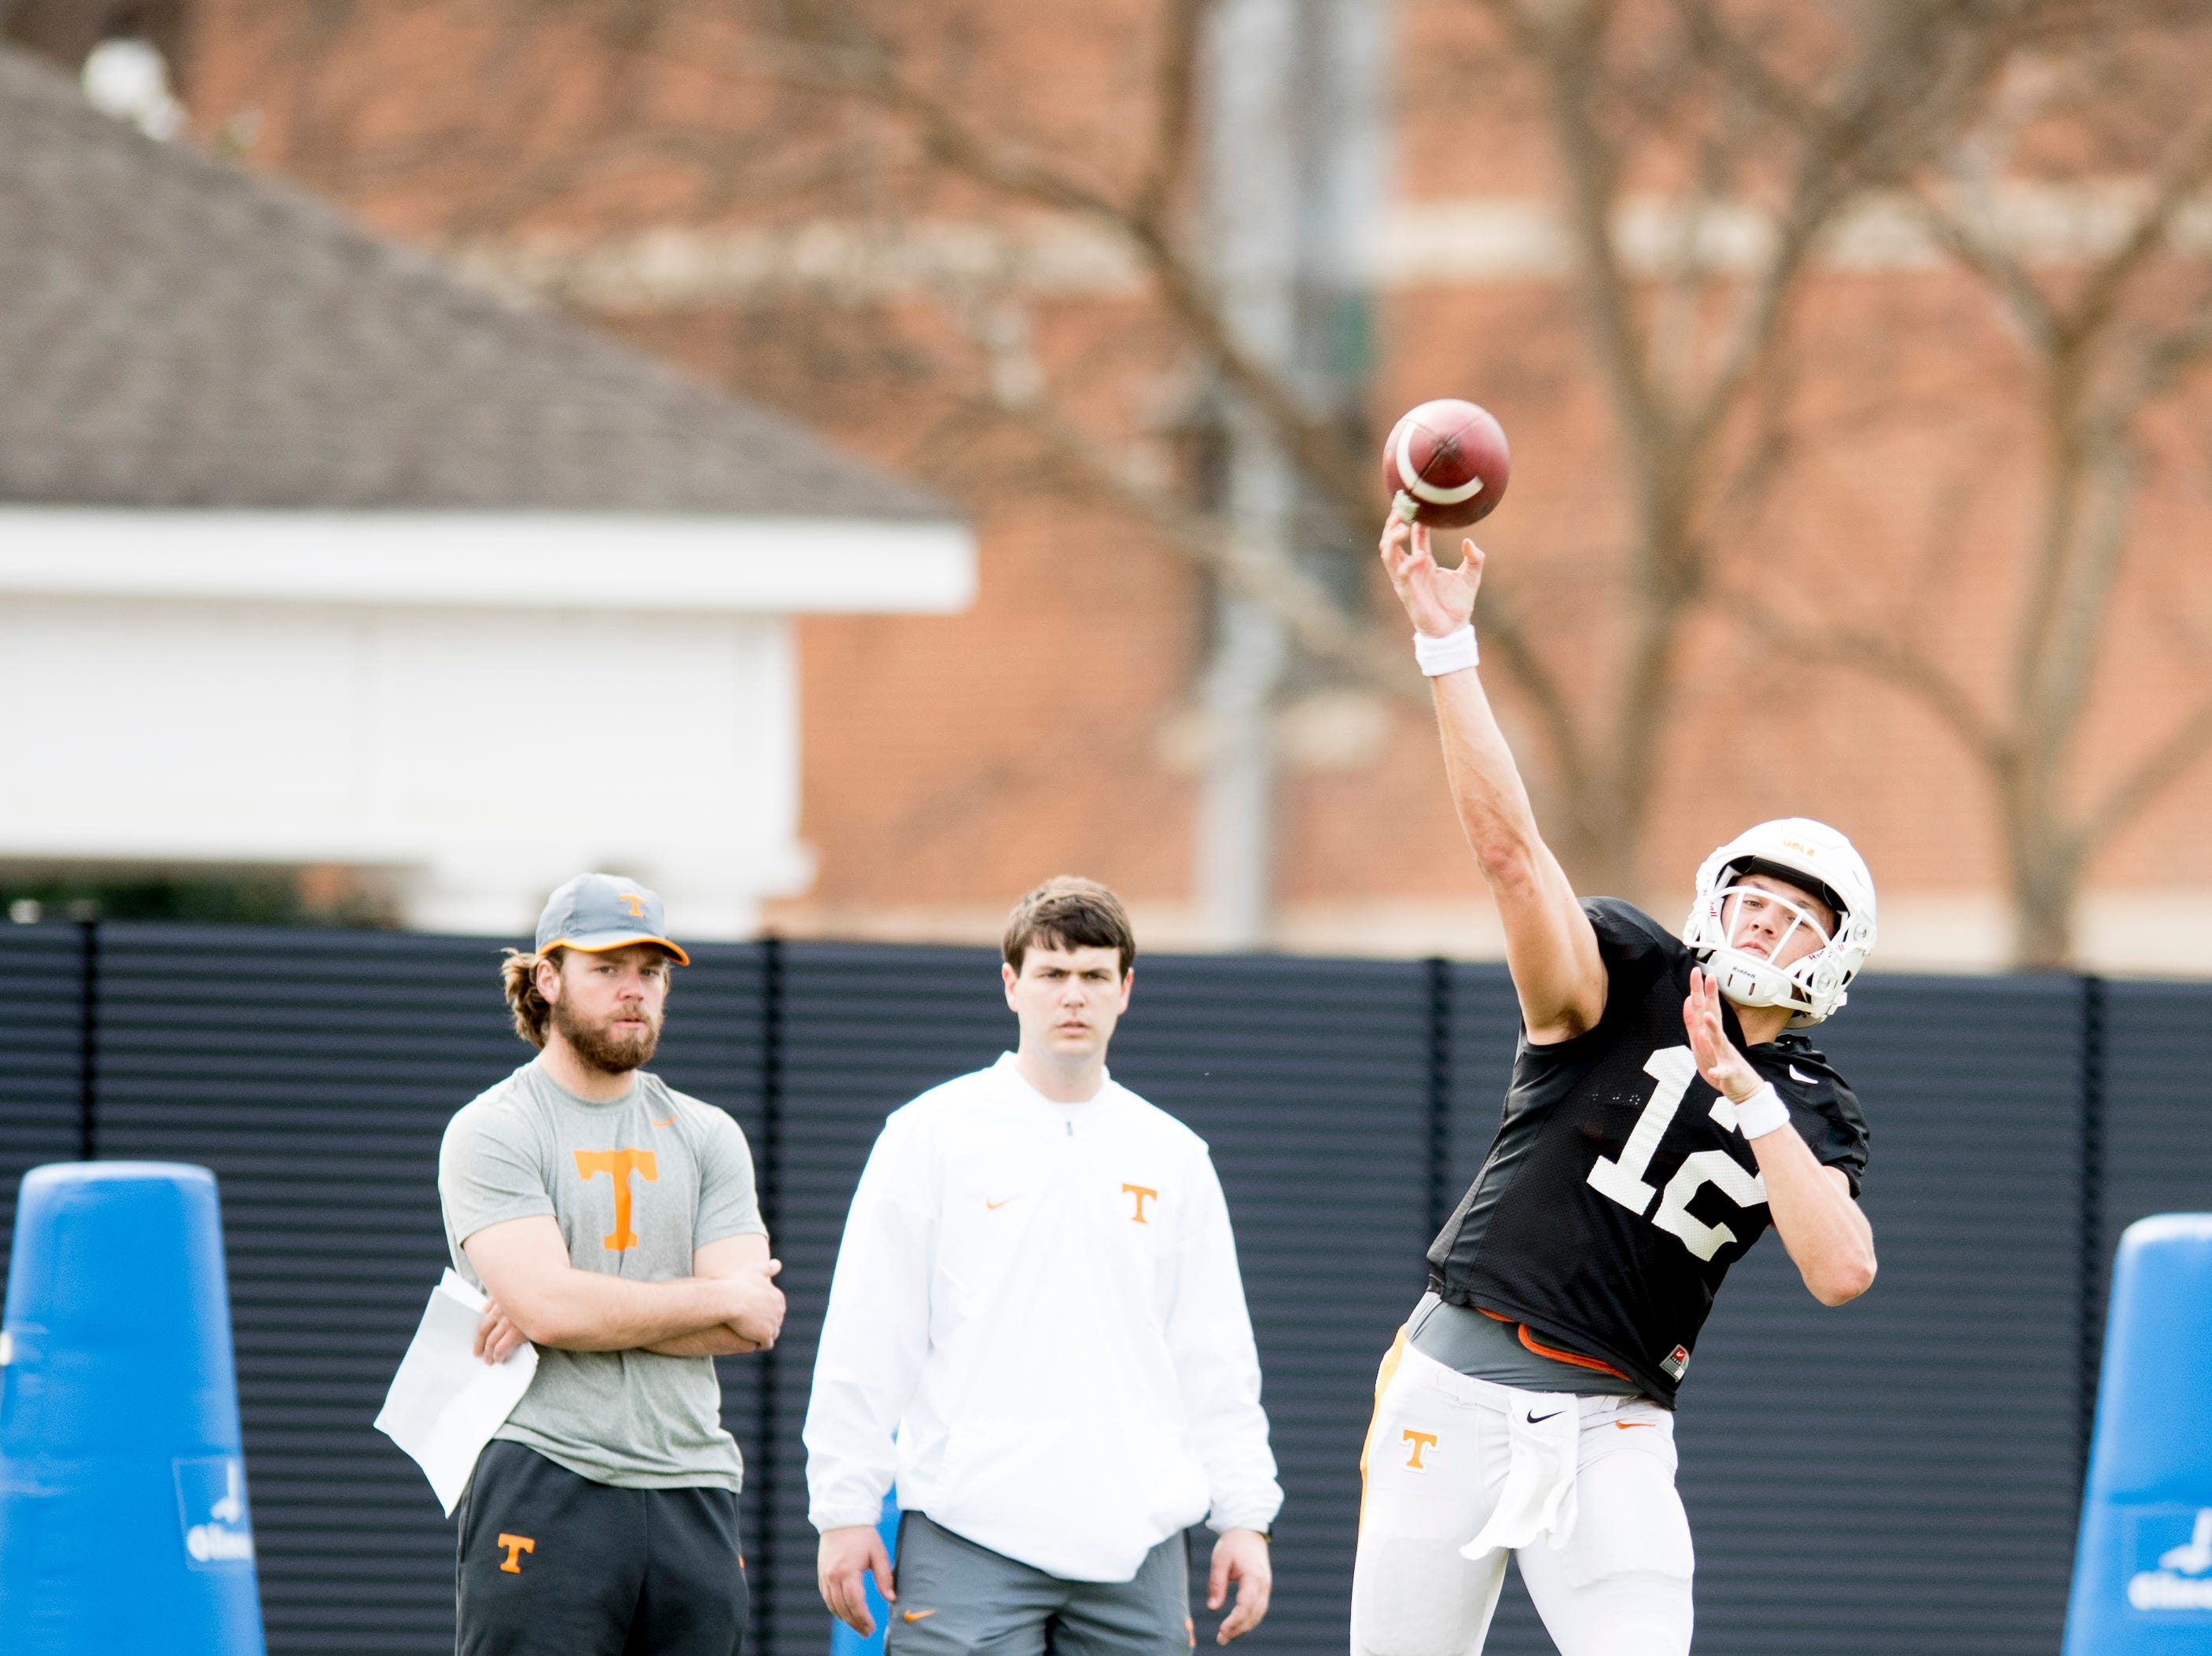 Tennessee quarterback JT Shrout (12) throws a pass during Tennessee spring football practice at  Haslam Field in Knoxville, Tennessee on Wednesday, March 13, 2019.